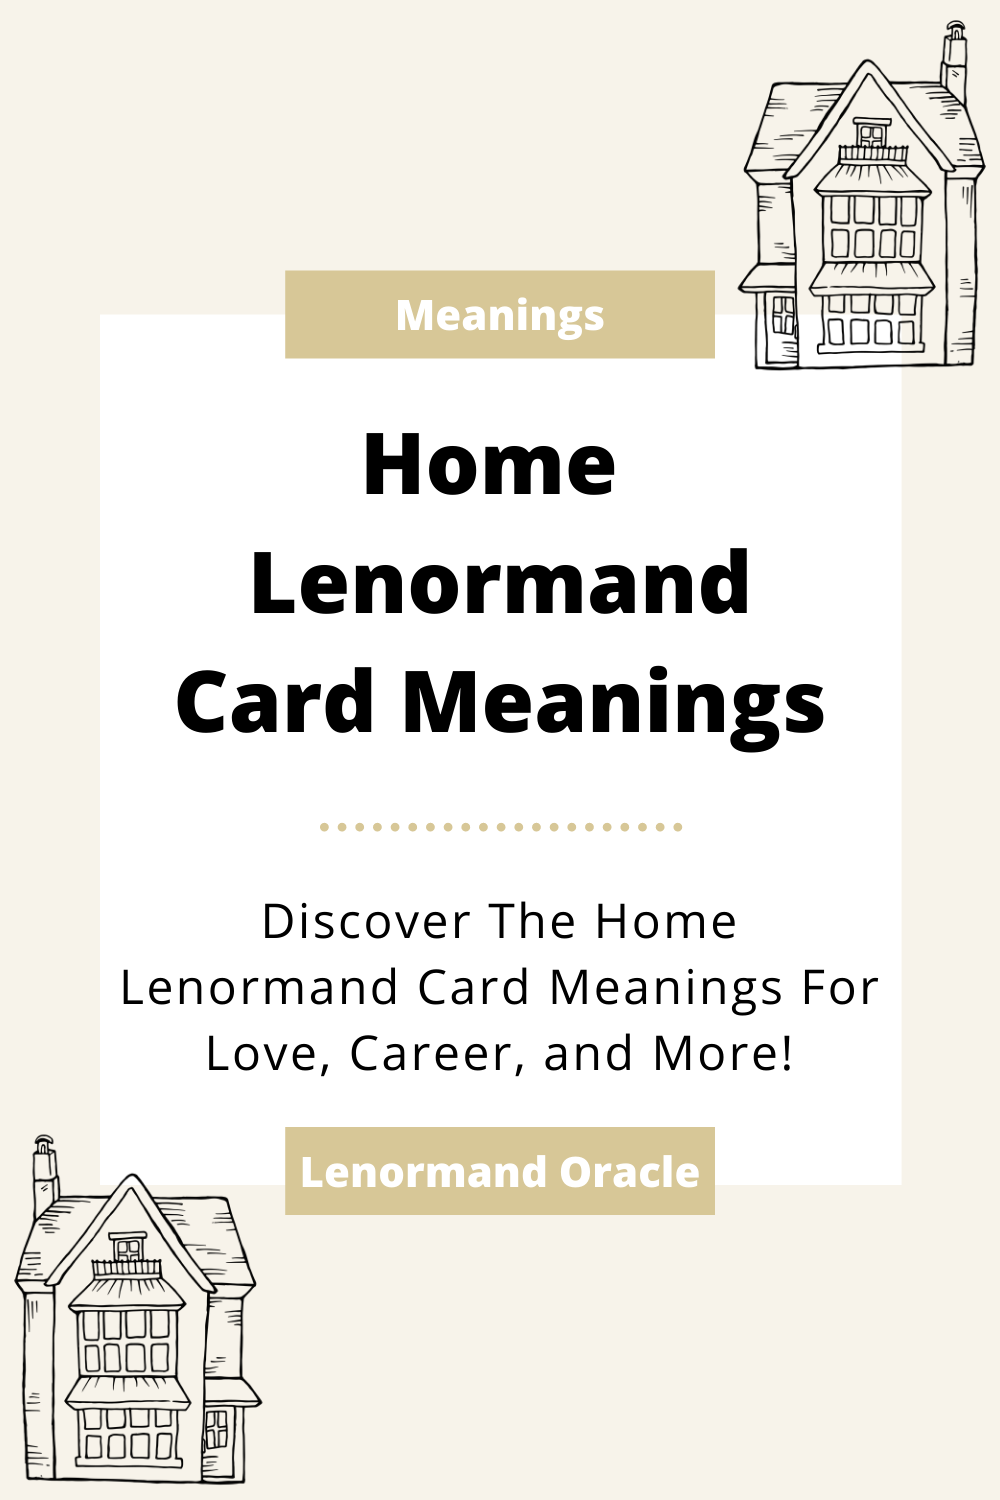 Lenormand Home Card Meanings - Lenormand Oracle